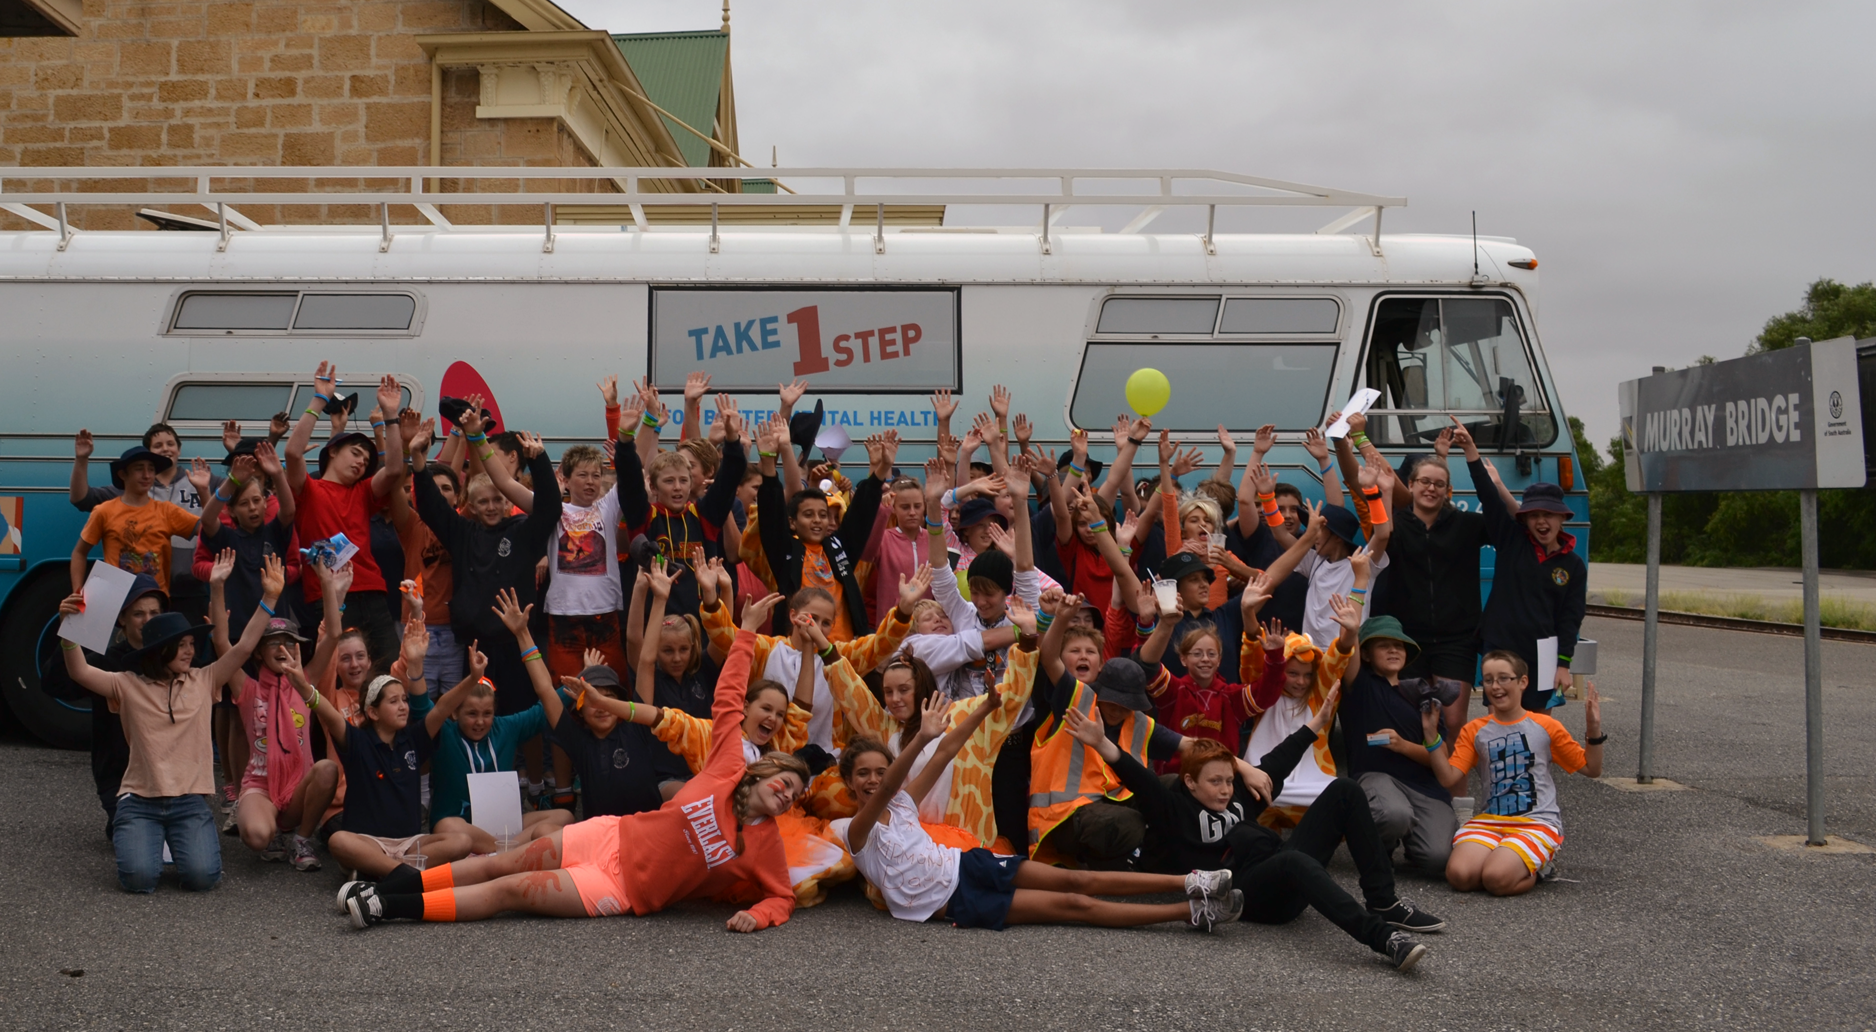 A school group in Murray Bridge visit the bus.